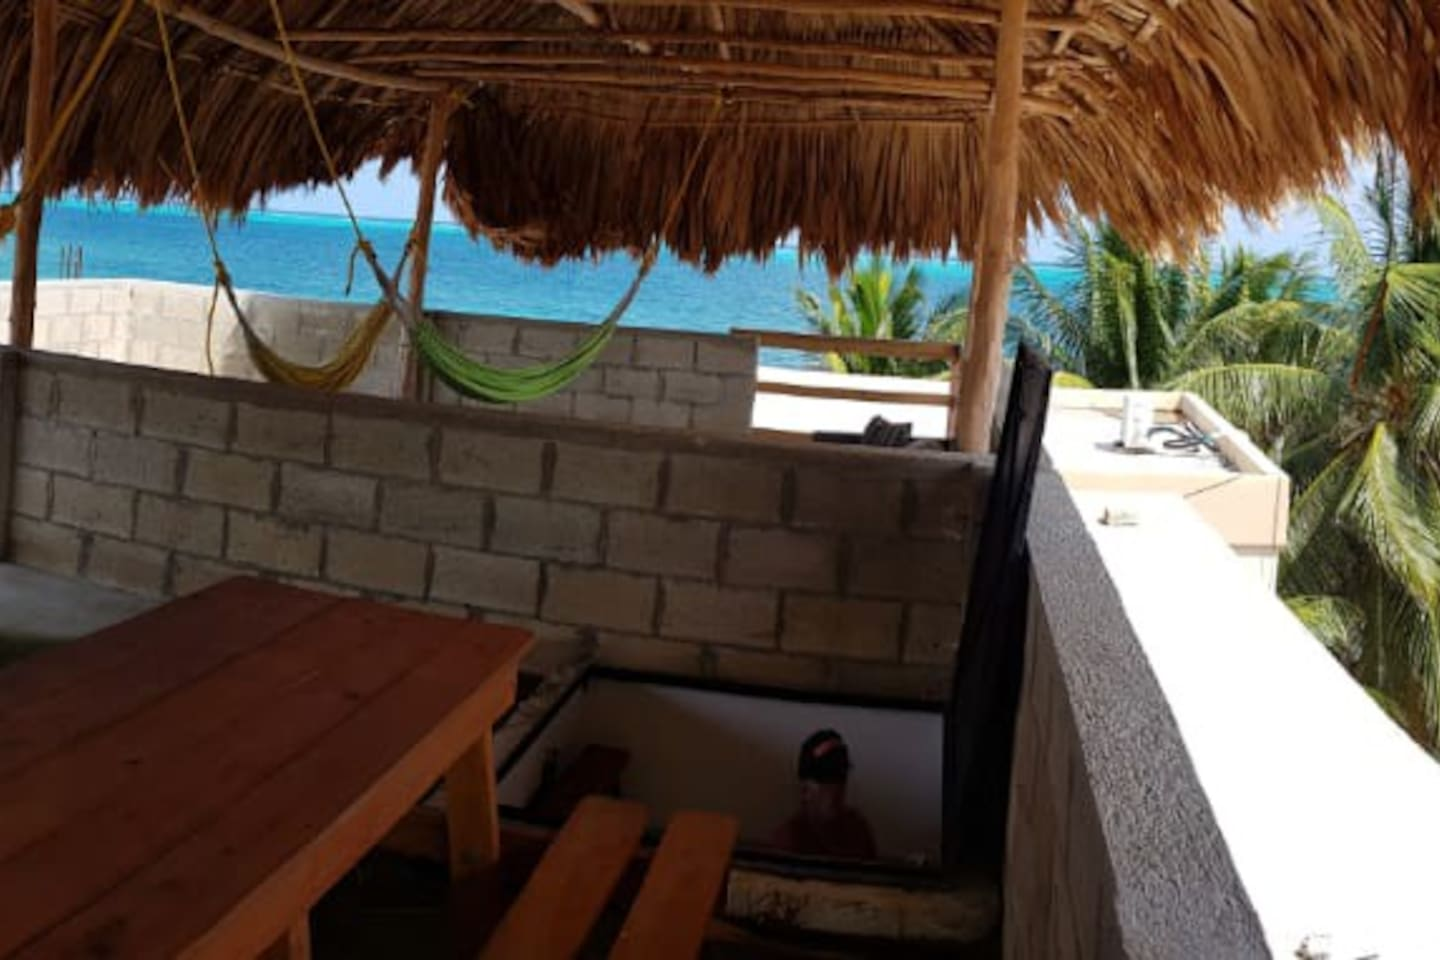 My condo has rooftop deck with palapa, hammocks, picnic table and amazing views!